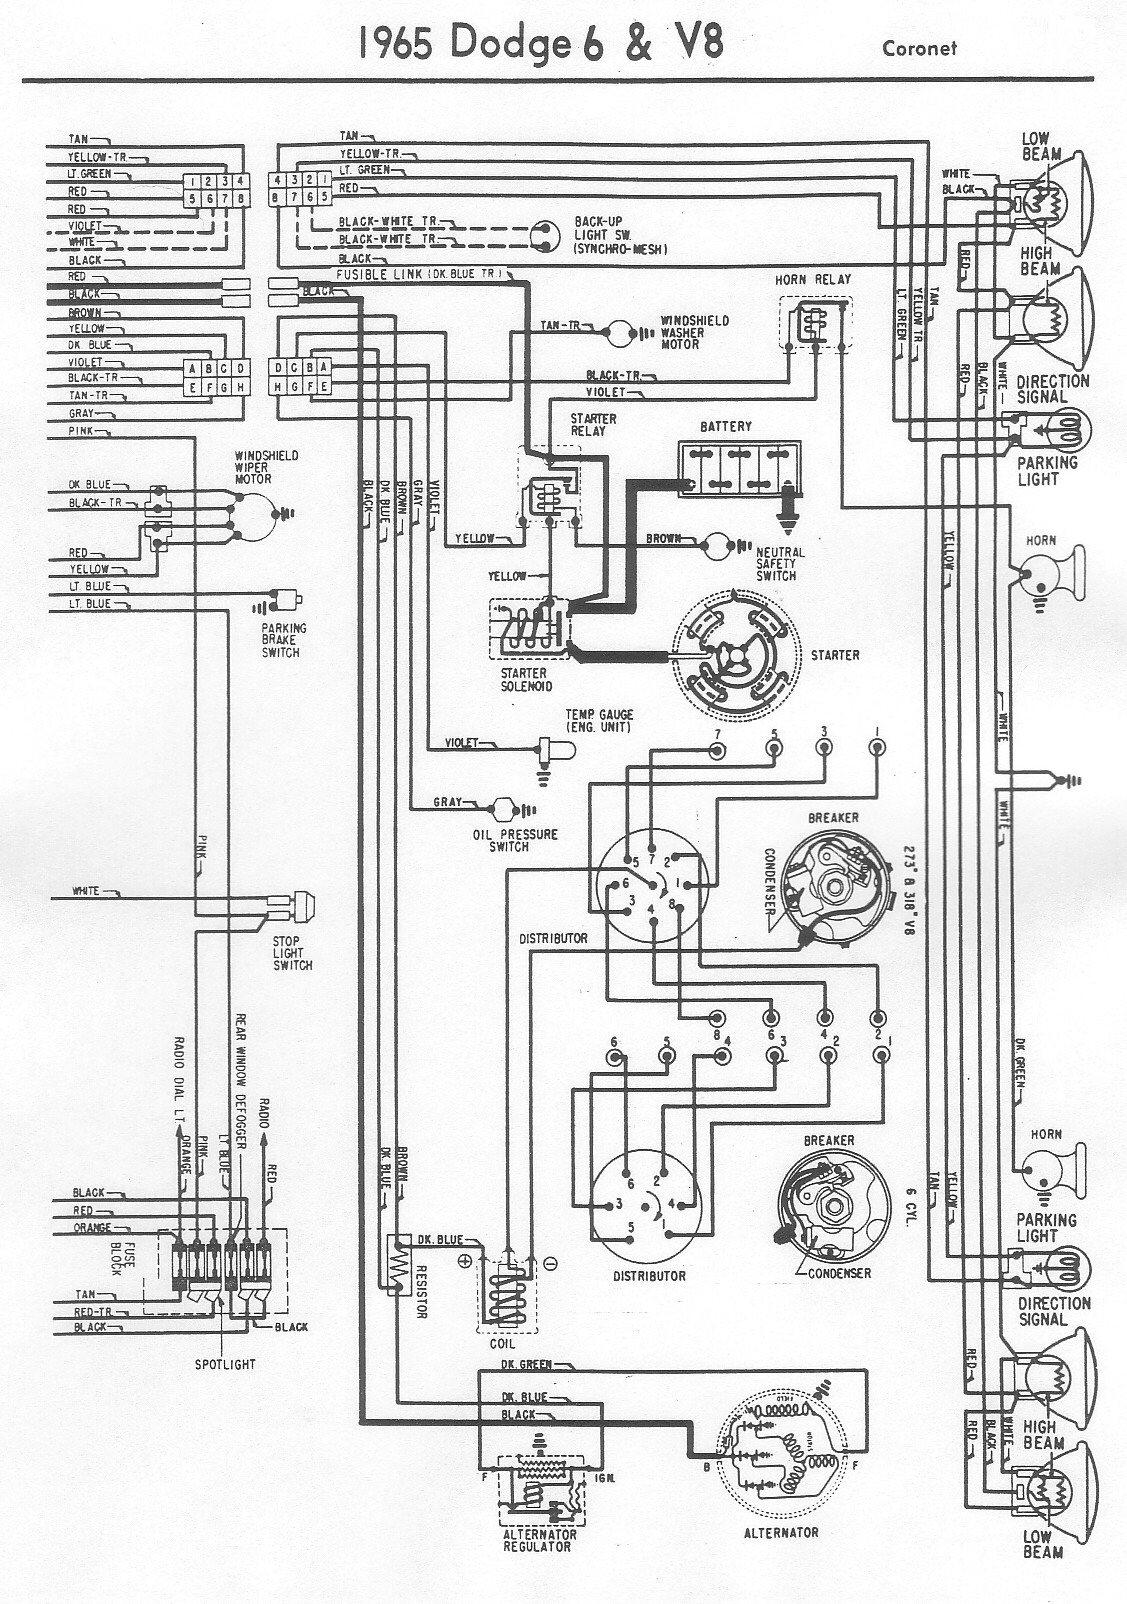 CG_5392] 2015 Dodge Dart Wiring Diagrams Download DiagramMang Hendil Mohammedshrine Librar Wiring 101